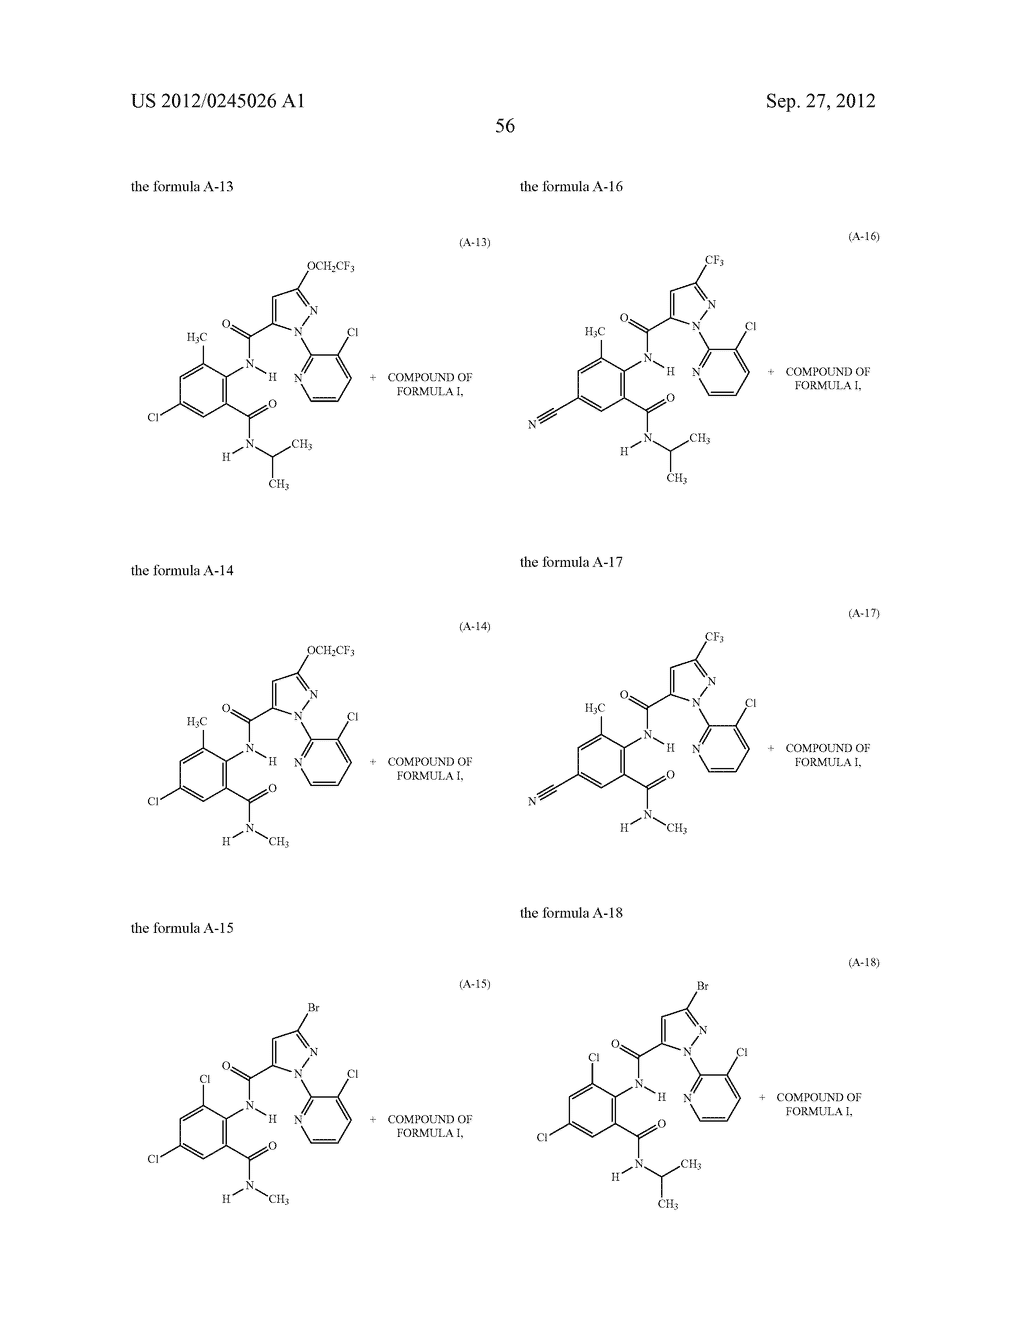 SPIRO FUSED 1-AMINO - PIPERDINE PYRROLIDINE DIONE DERIVATIVES WITH     PESTICIDAL ACTIVITY - diagram, schematic, and image 57